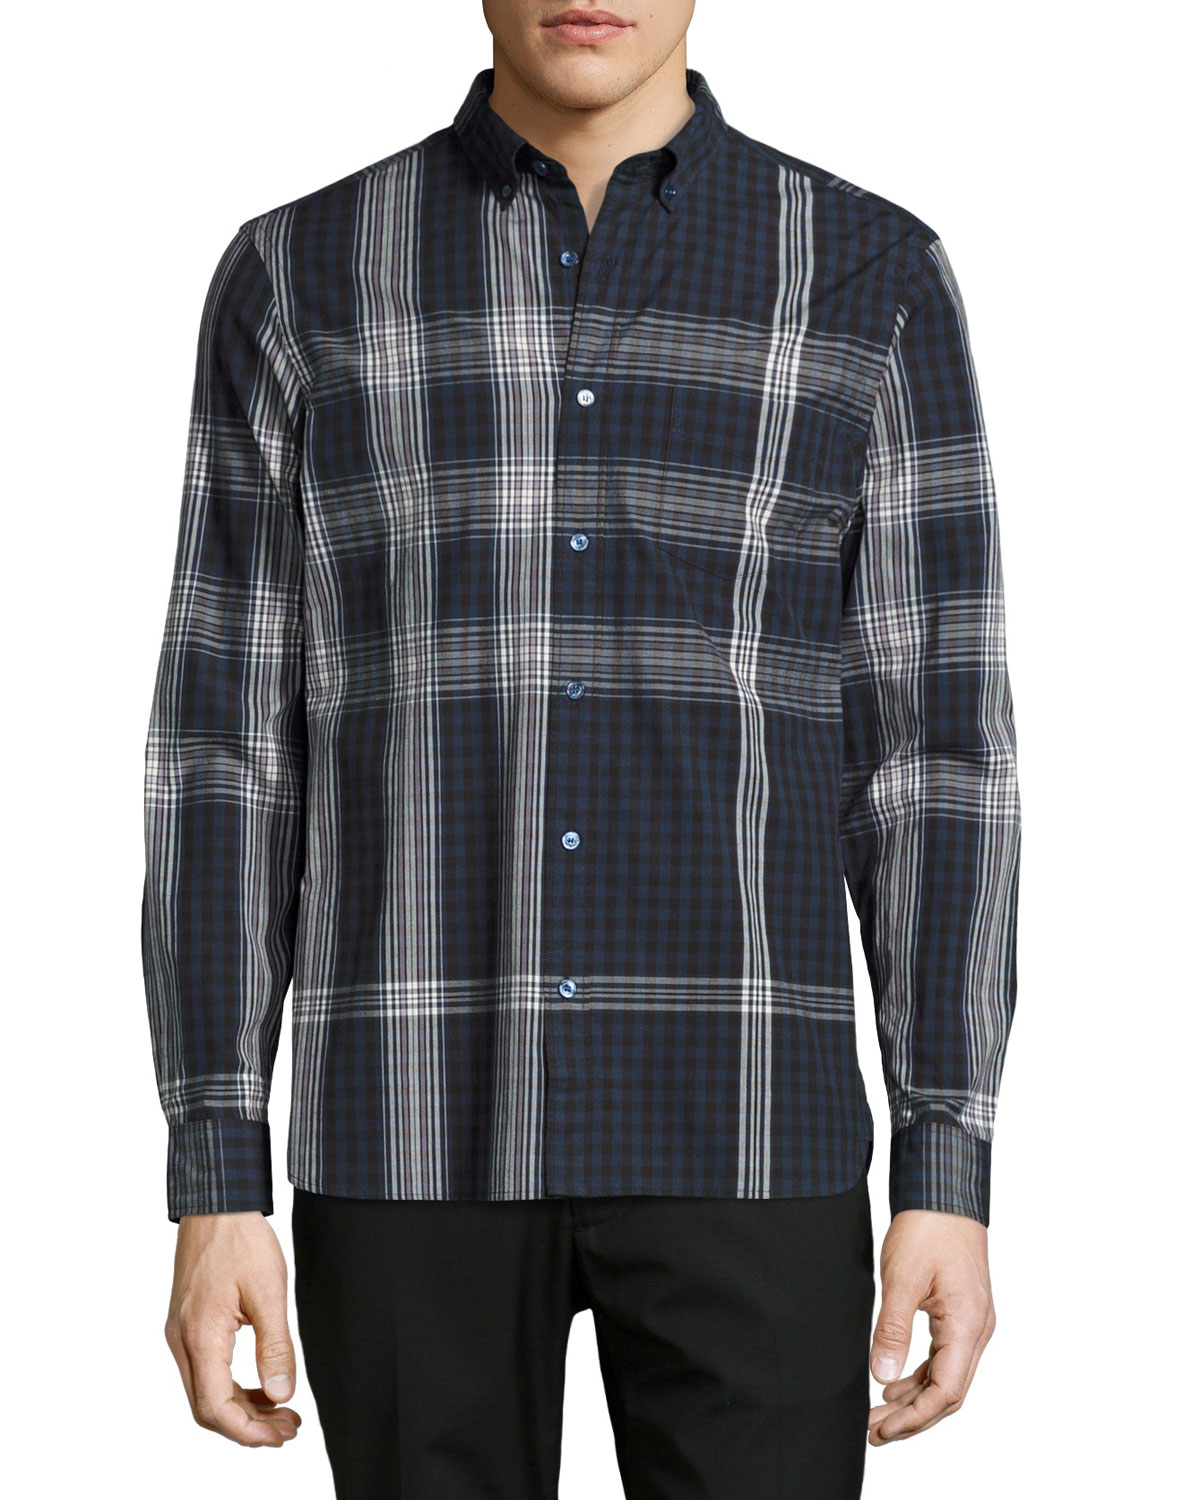 Blackrock Check Poplin Shirt, Navy Blue